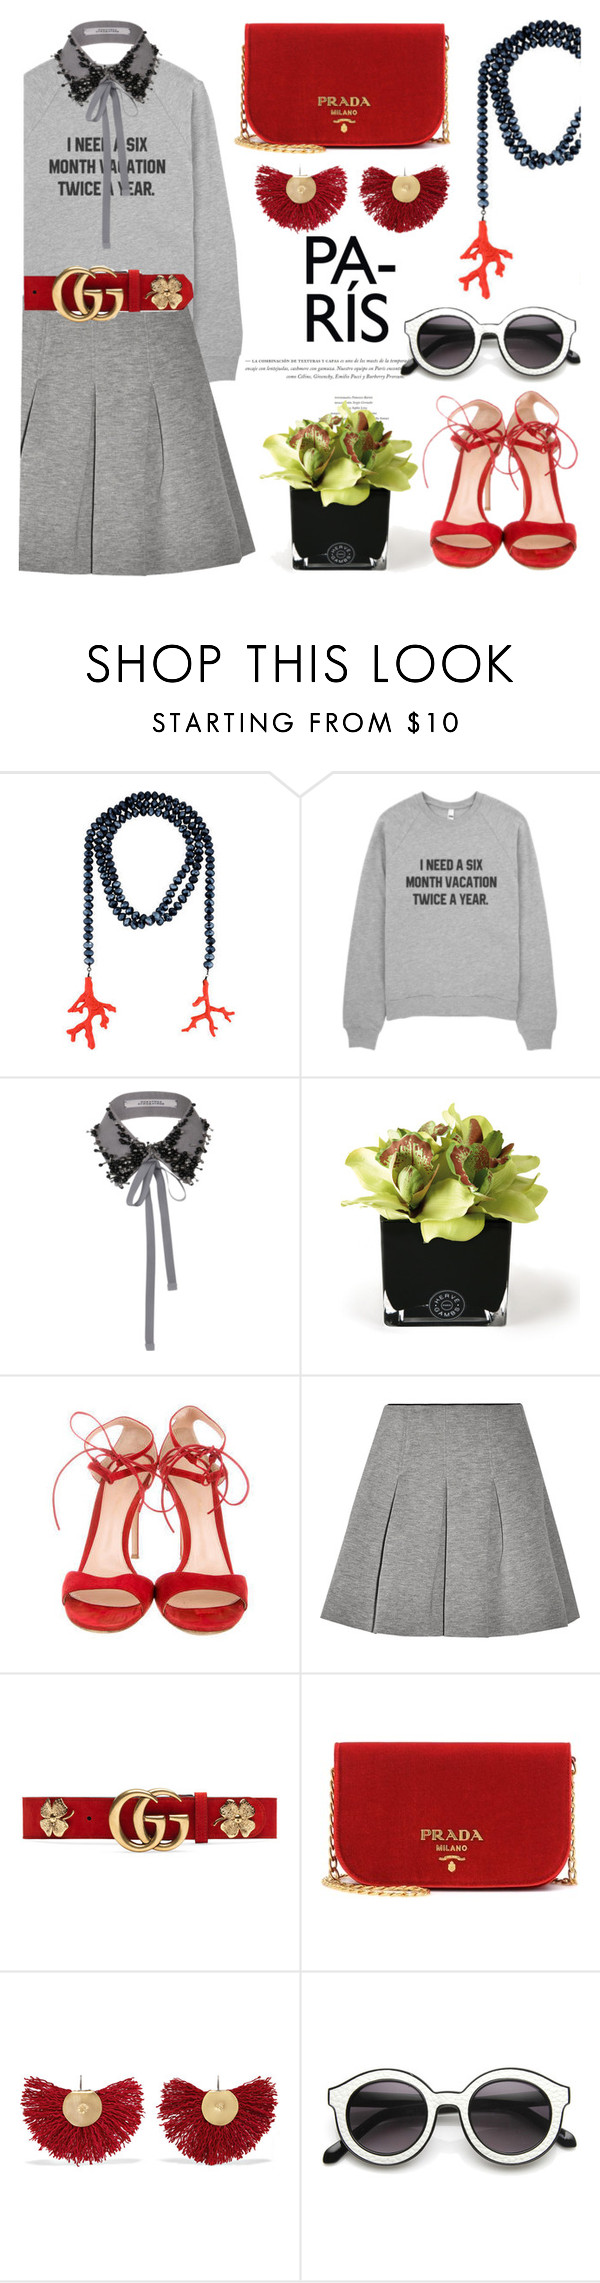 """Six month holidays"" by pensivepeacock ❤ liked on Polyvore featuring Kenneth Jay Lane, Hervé Gambs, Gianvito Rossi, T By Alexander Wang, Gucci, Prada, Katerina Makriyianni and INDIE HAIR"